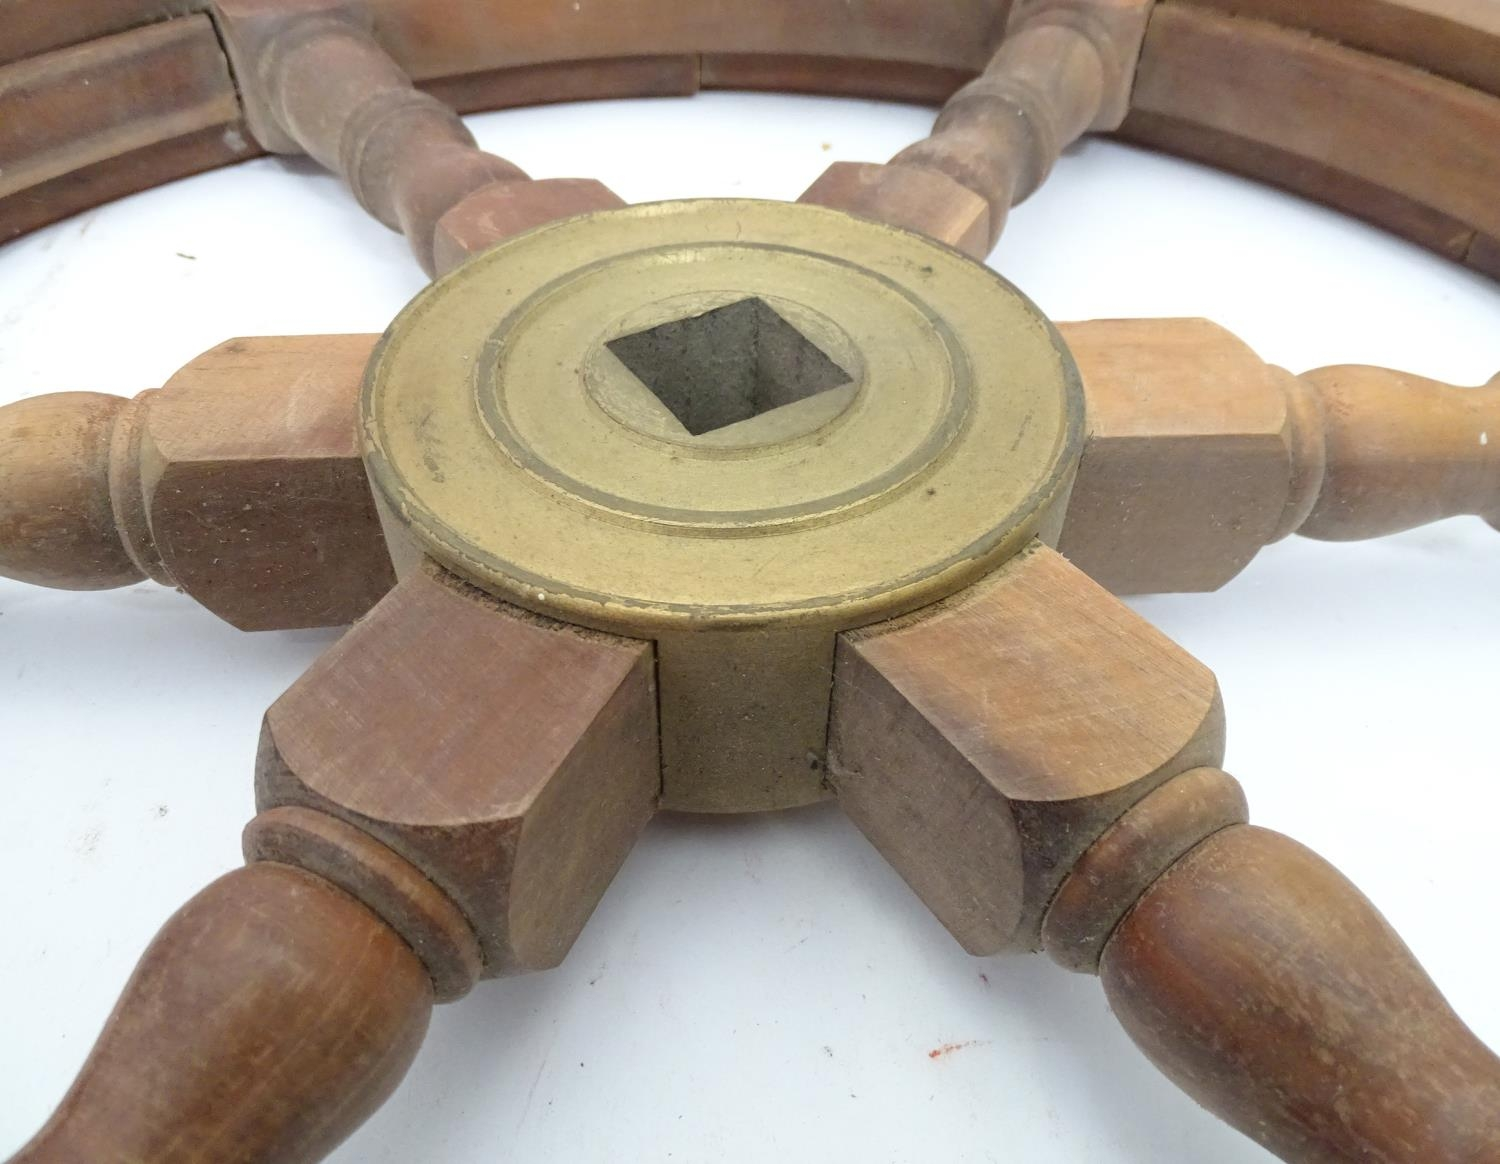 A teak and brass ships wheel Please Note - we do not make reference to the condition of lots - Image 3 of 4